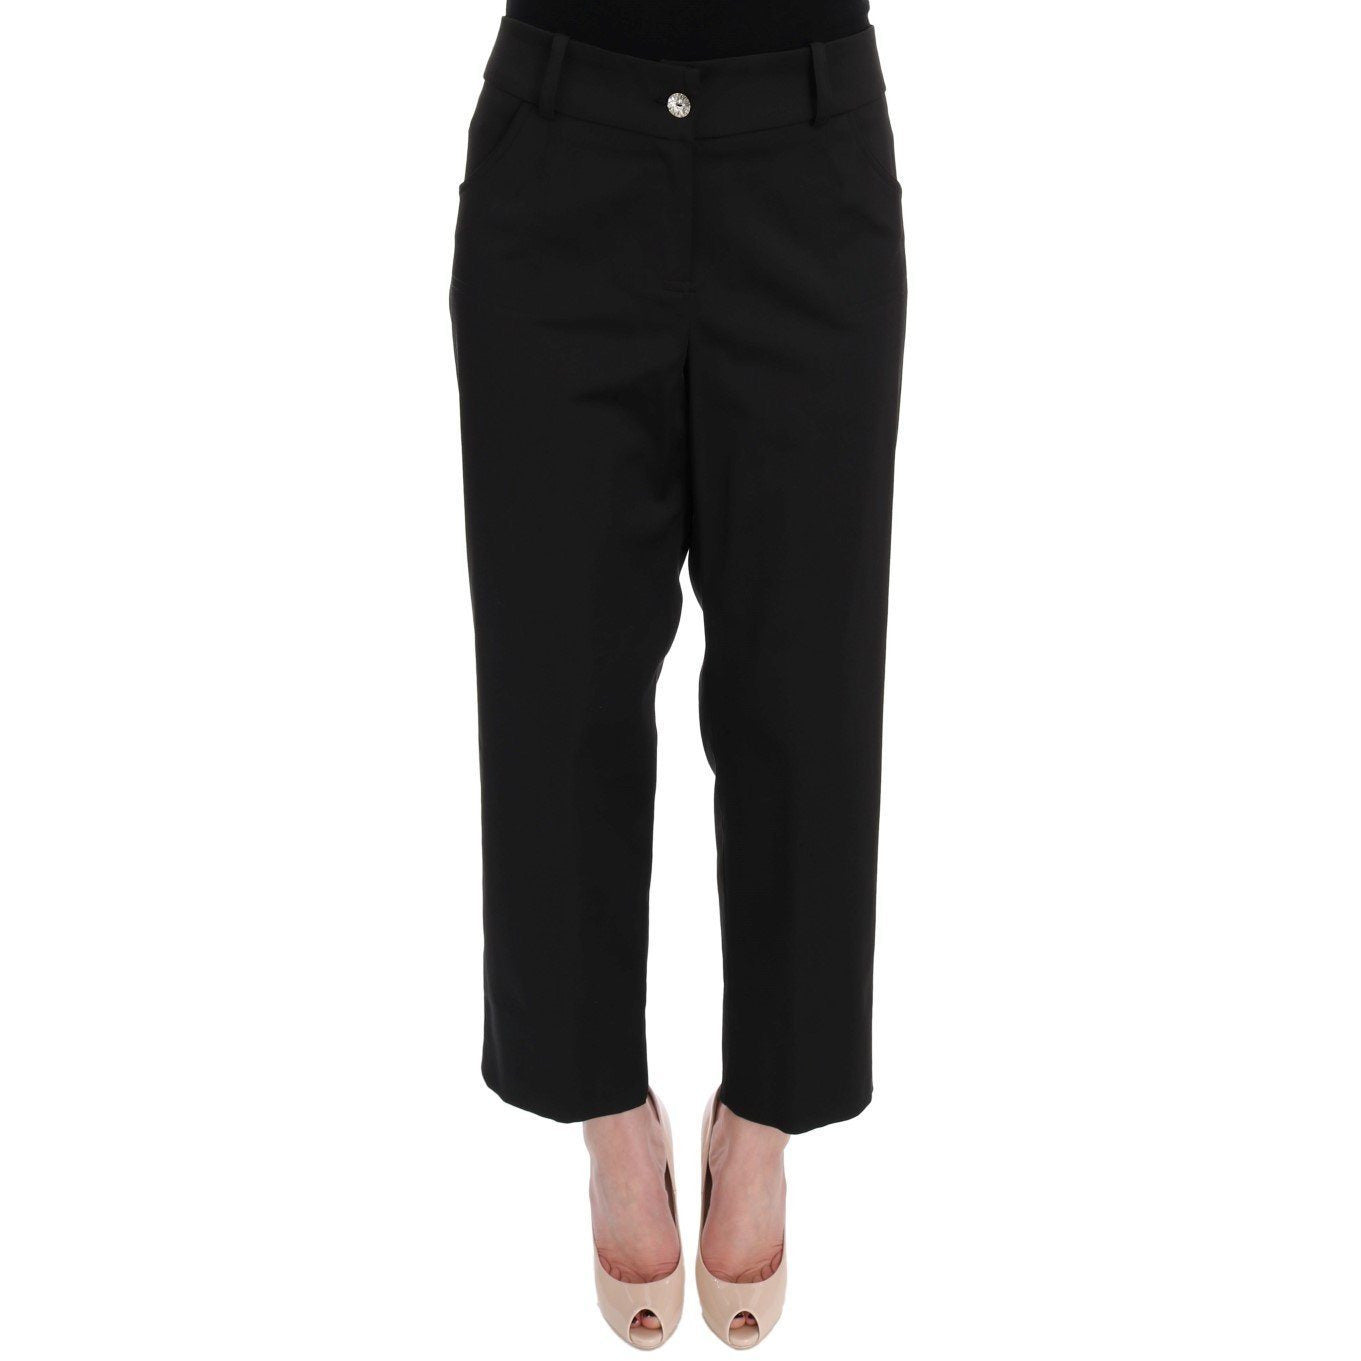 Black Wool Capri Dress Pants BENCIVENGA